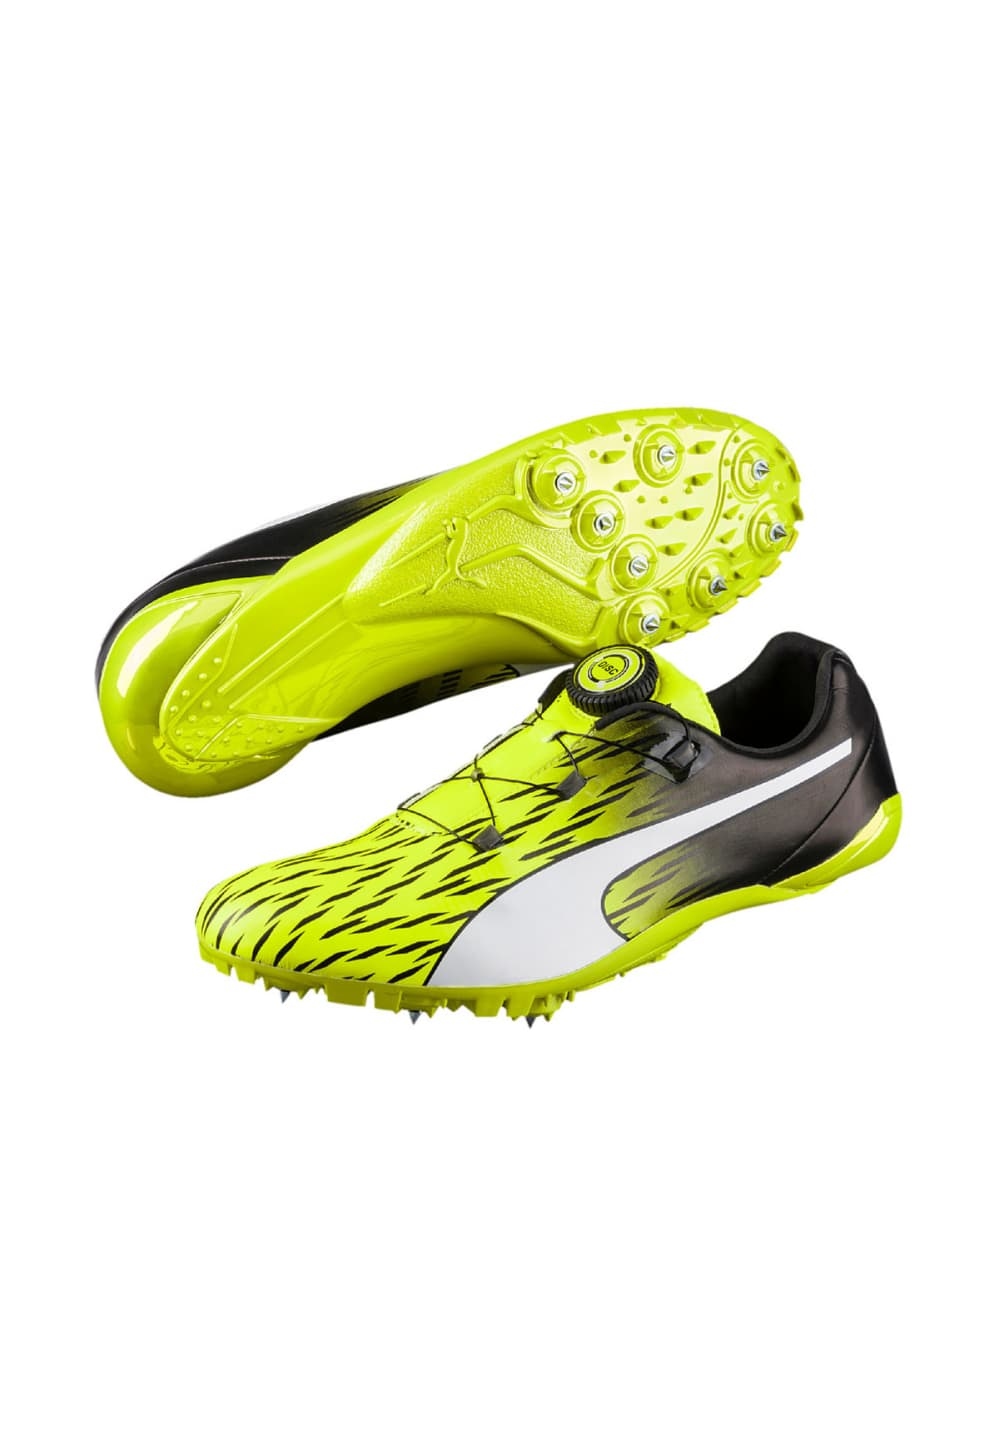 41dae937c5 Puma Evospeed Disc 3 - Running shoes - Yellow